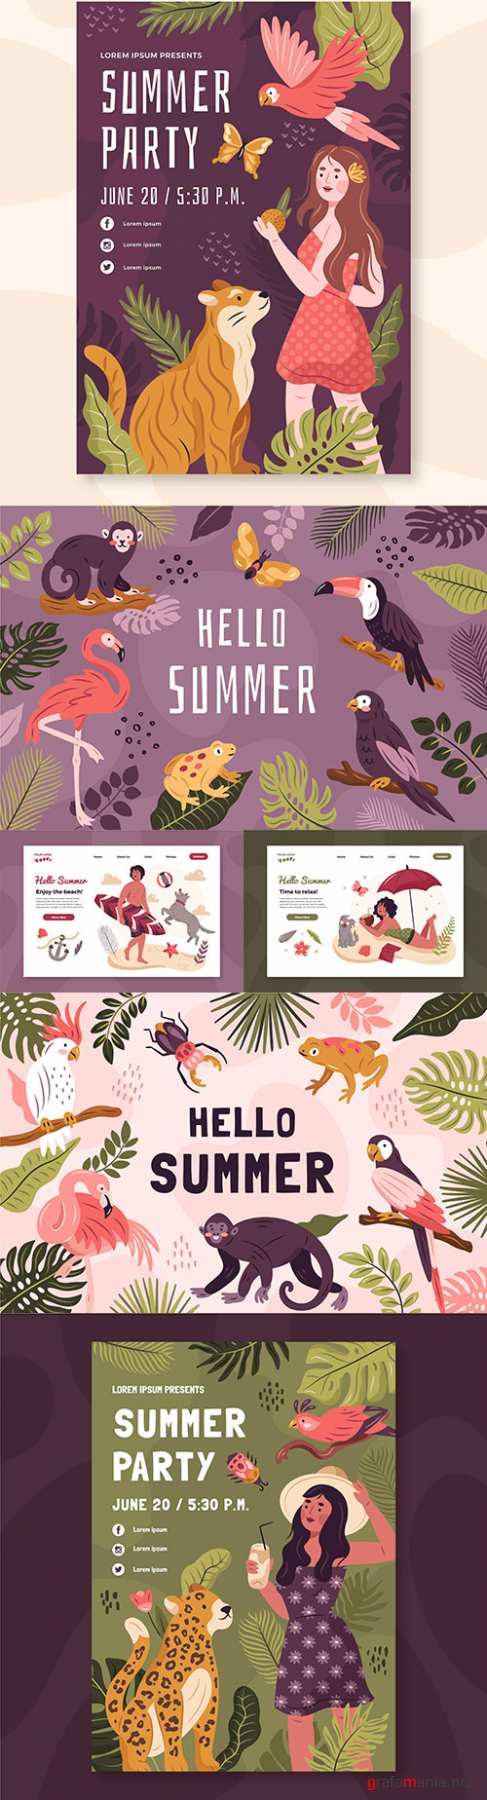 Summer party and tropical animals hand-drawn poster